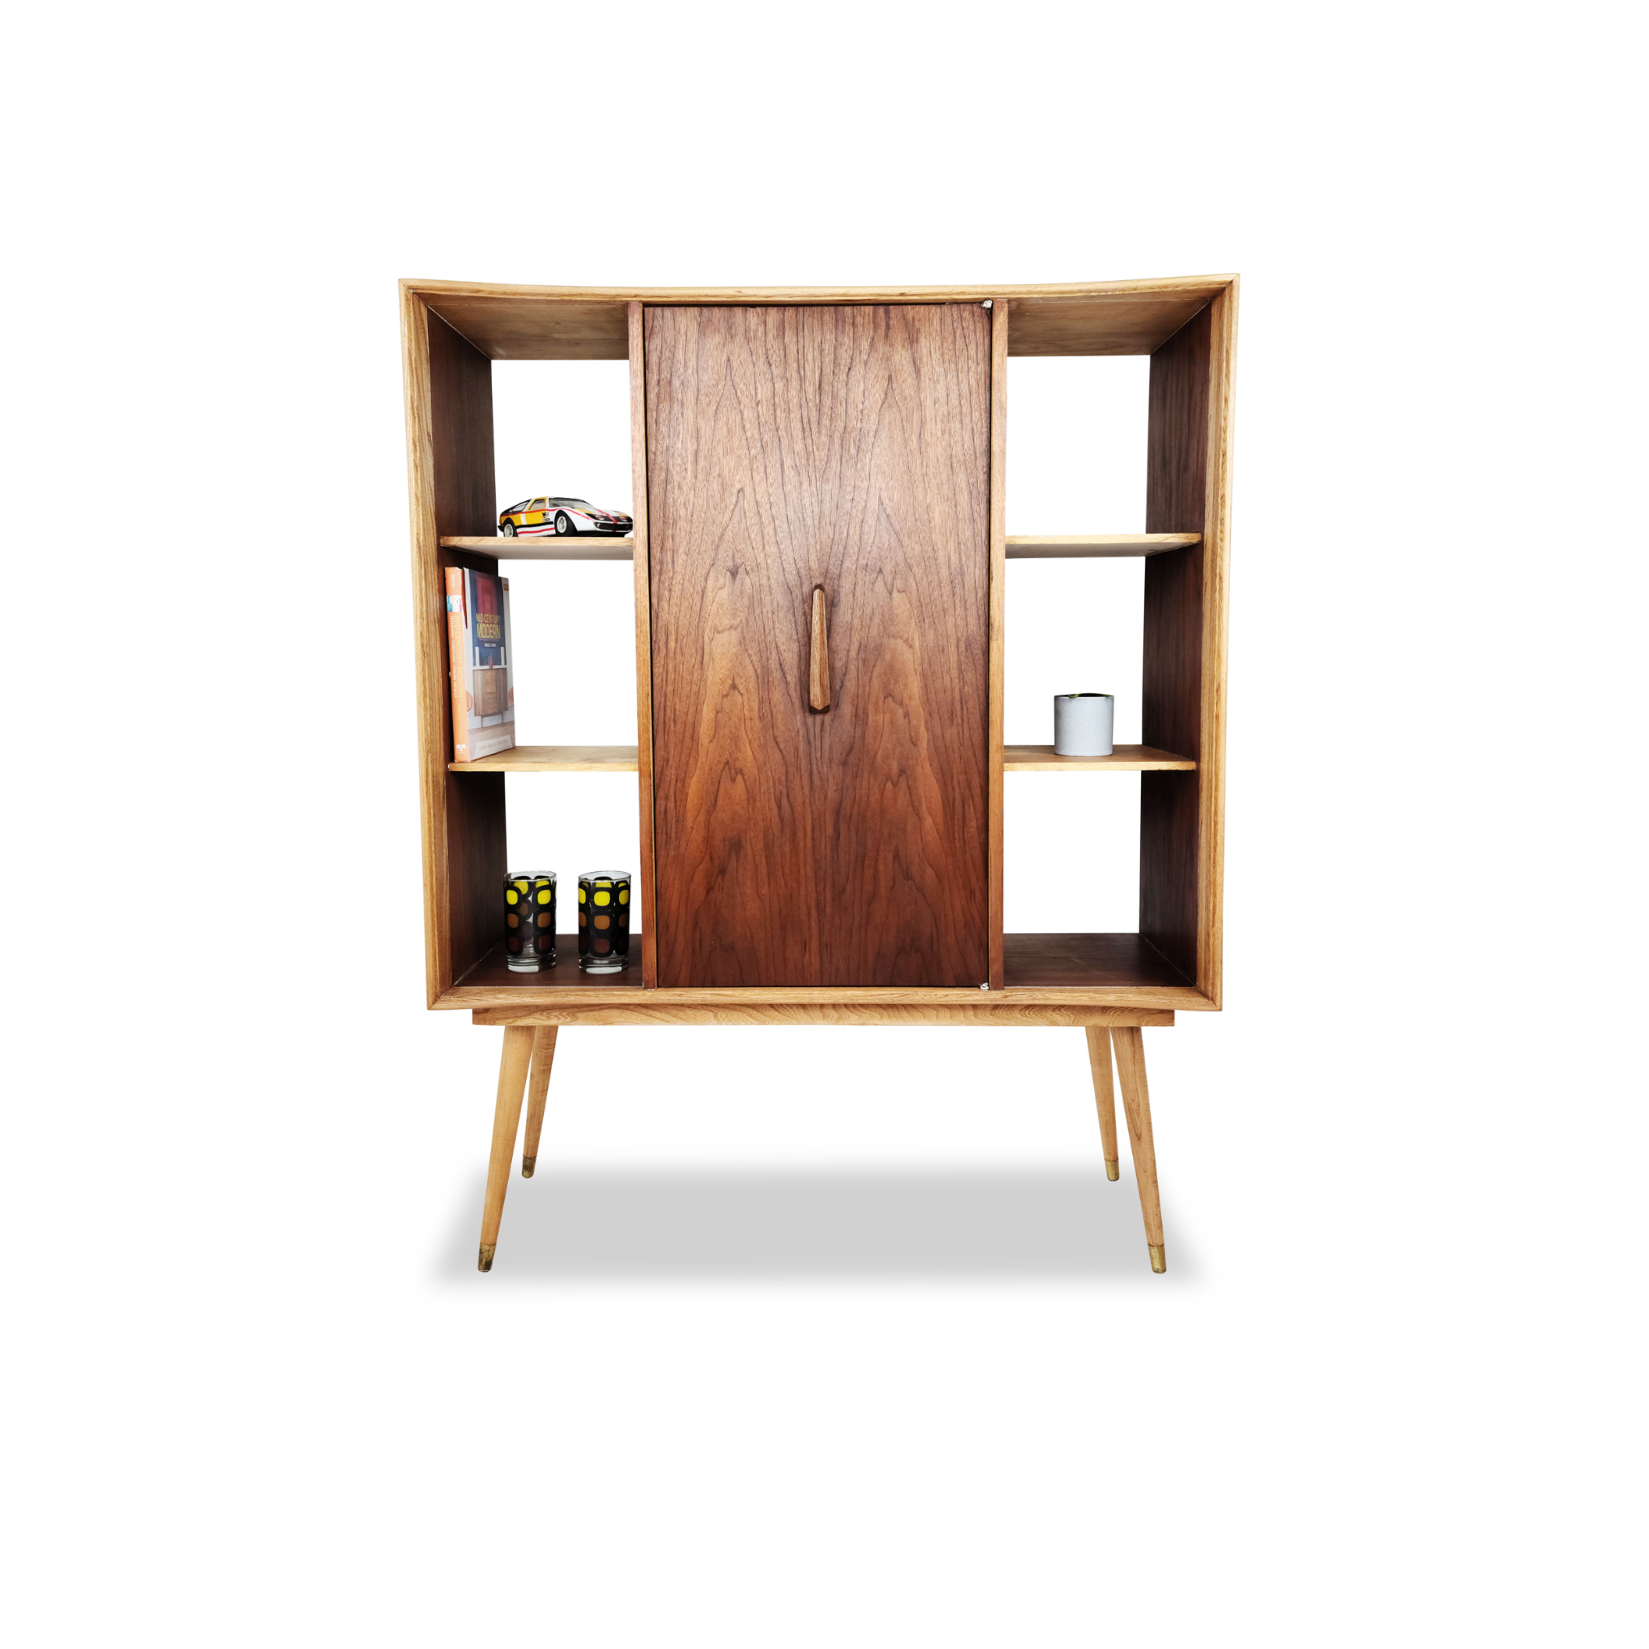 Walnut and Ash Bookcase by Deilcraft